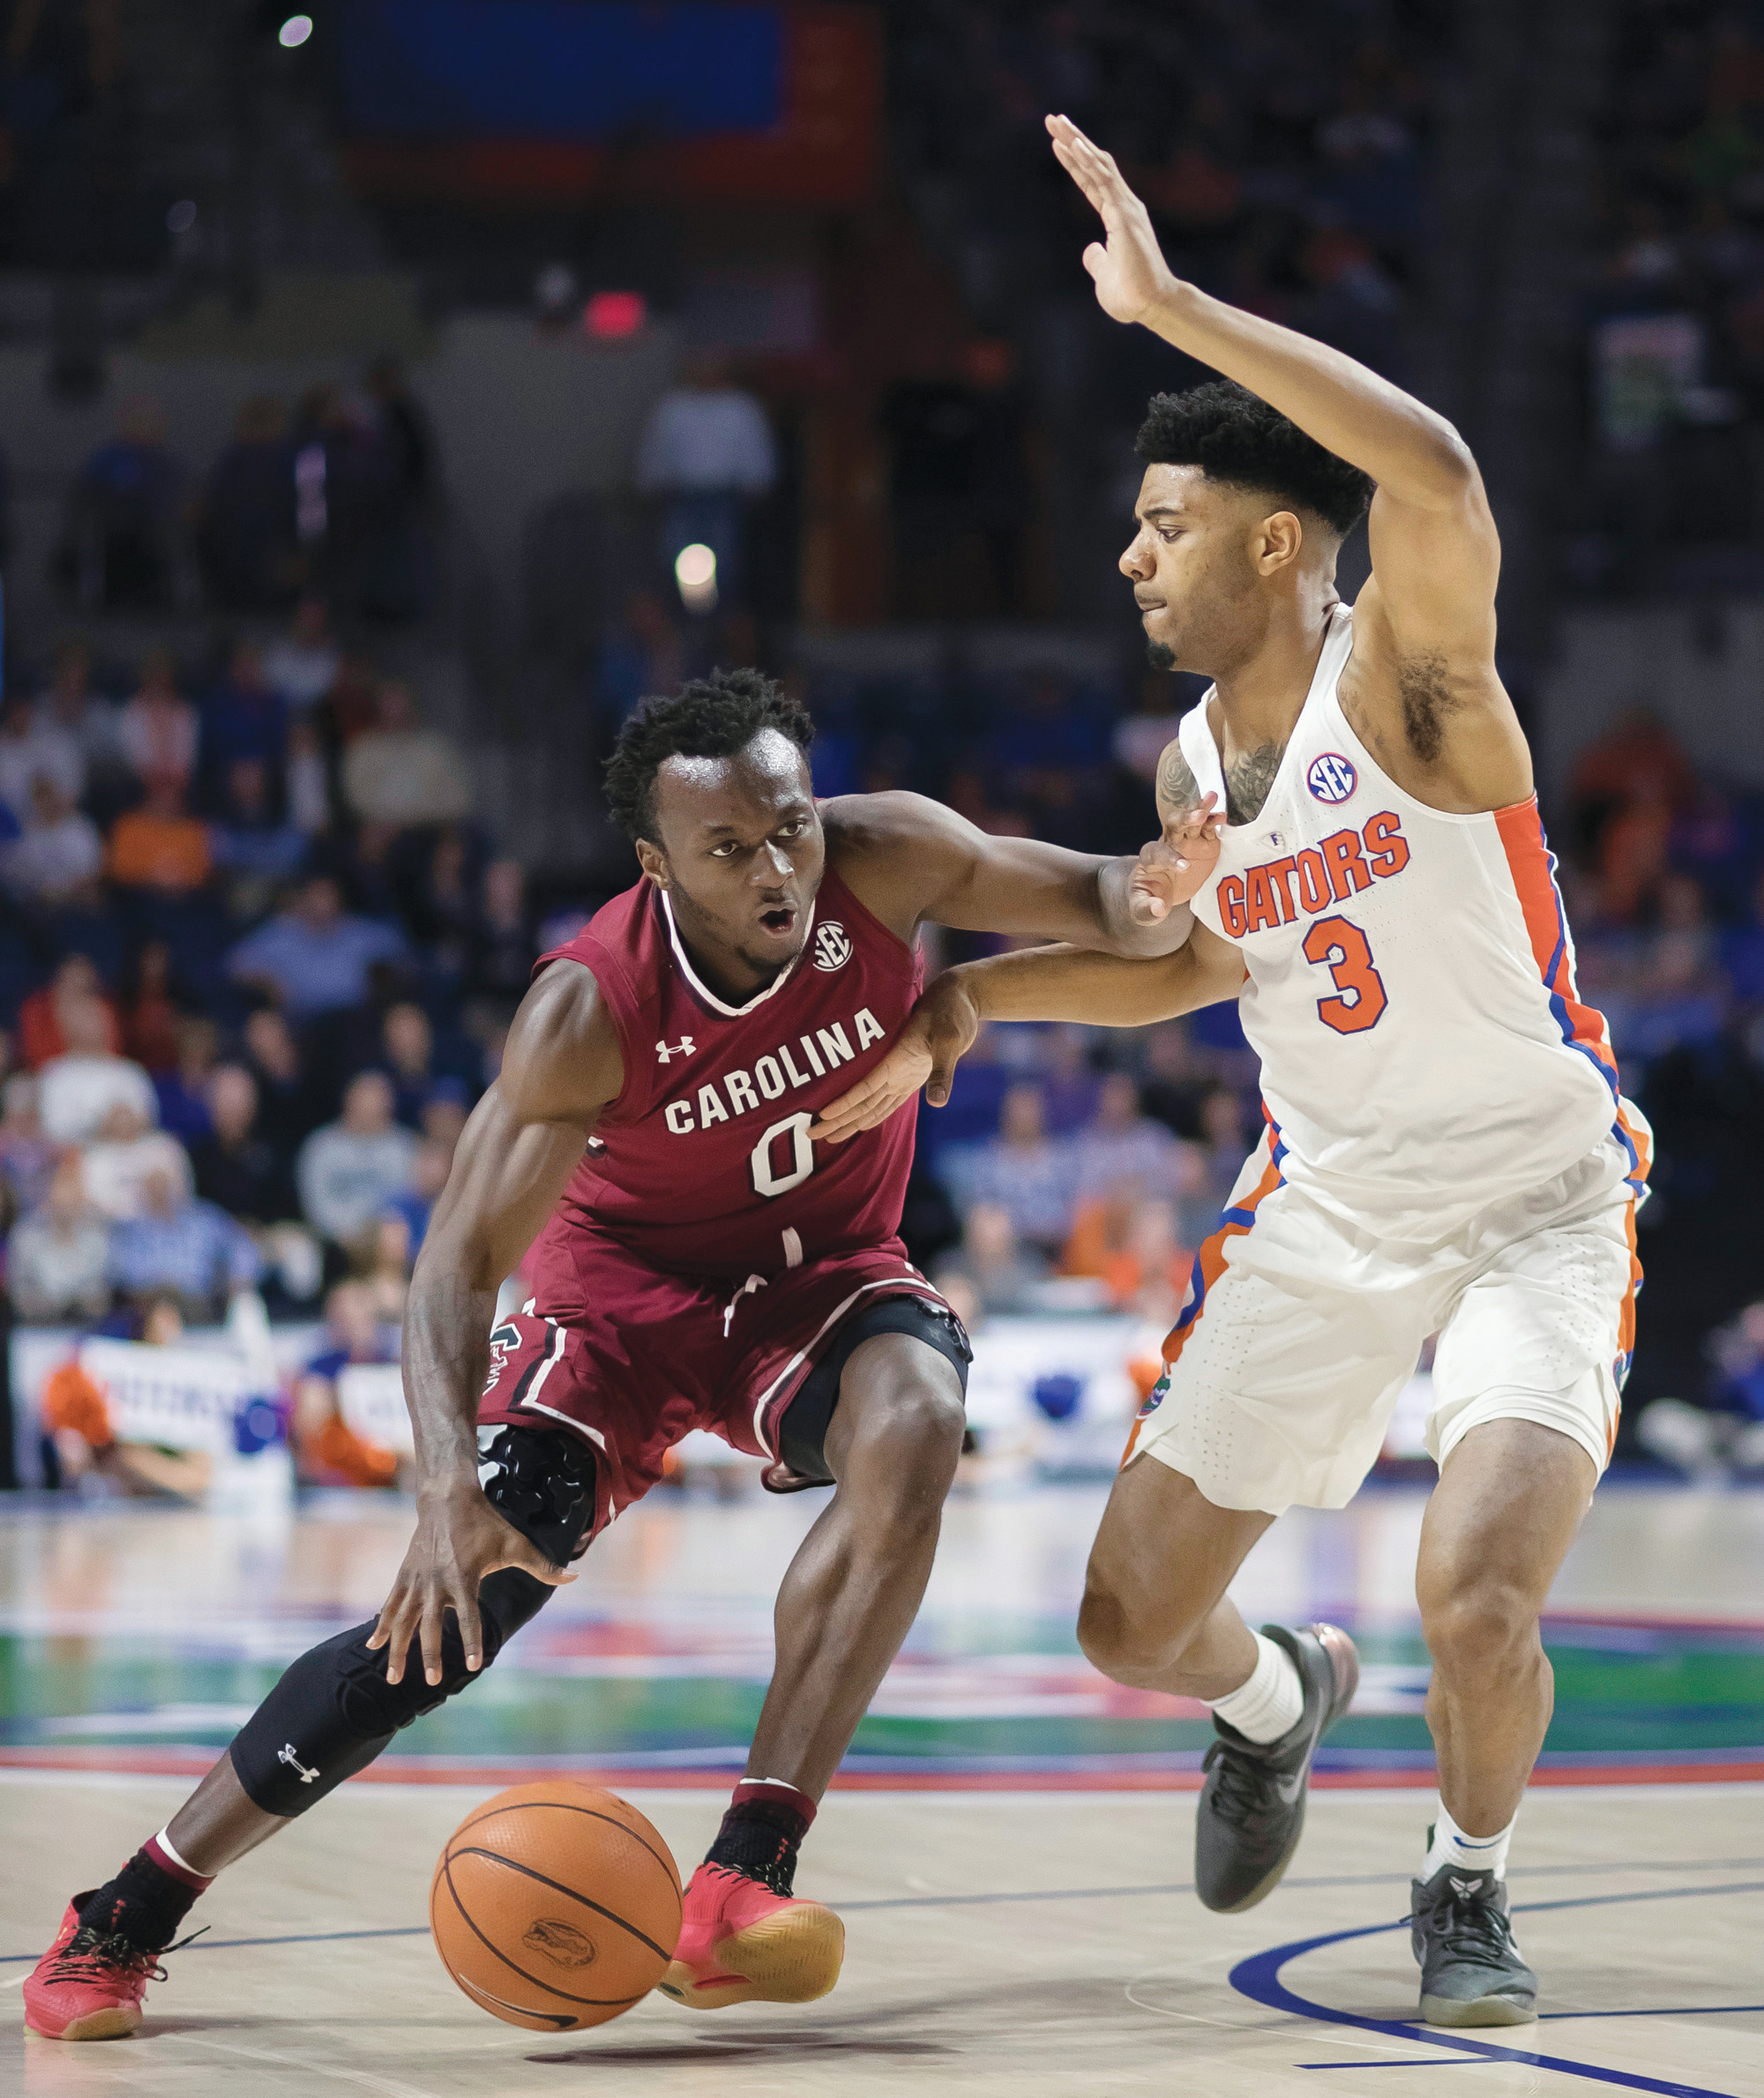 South Carolina's David Beatty (0) dribbles against Florida's Jalen Hudson (3) during the Gamecocks' 77-72 victory on Wednesday in Gainesville, Florida.